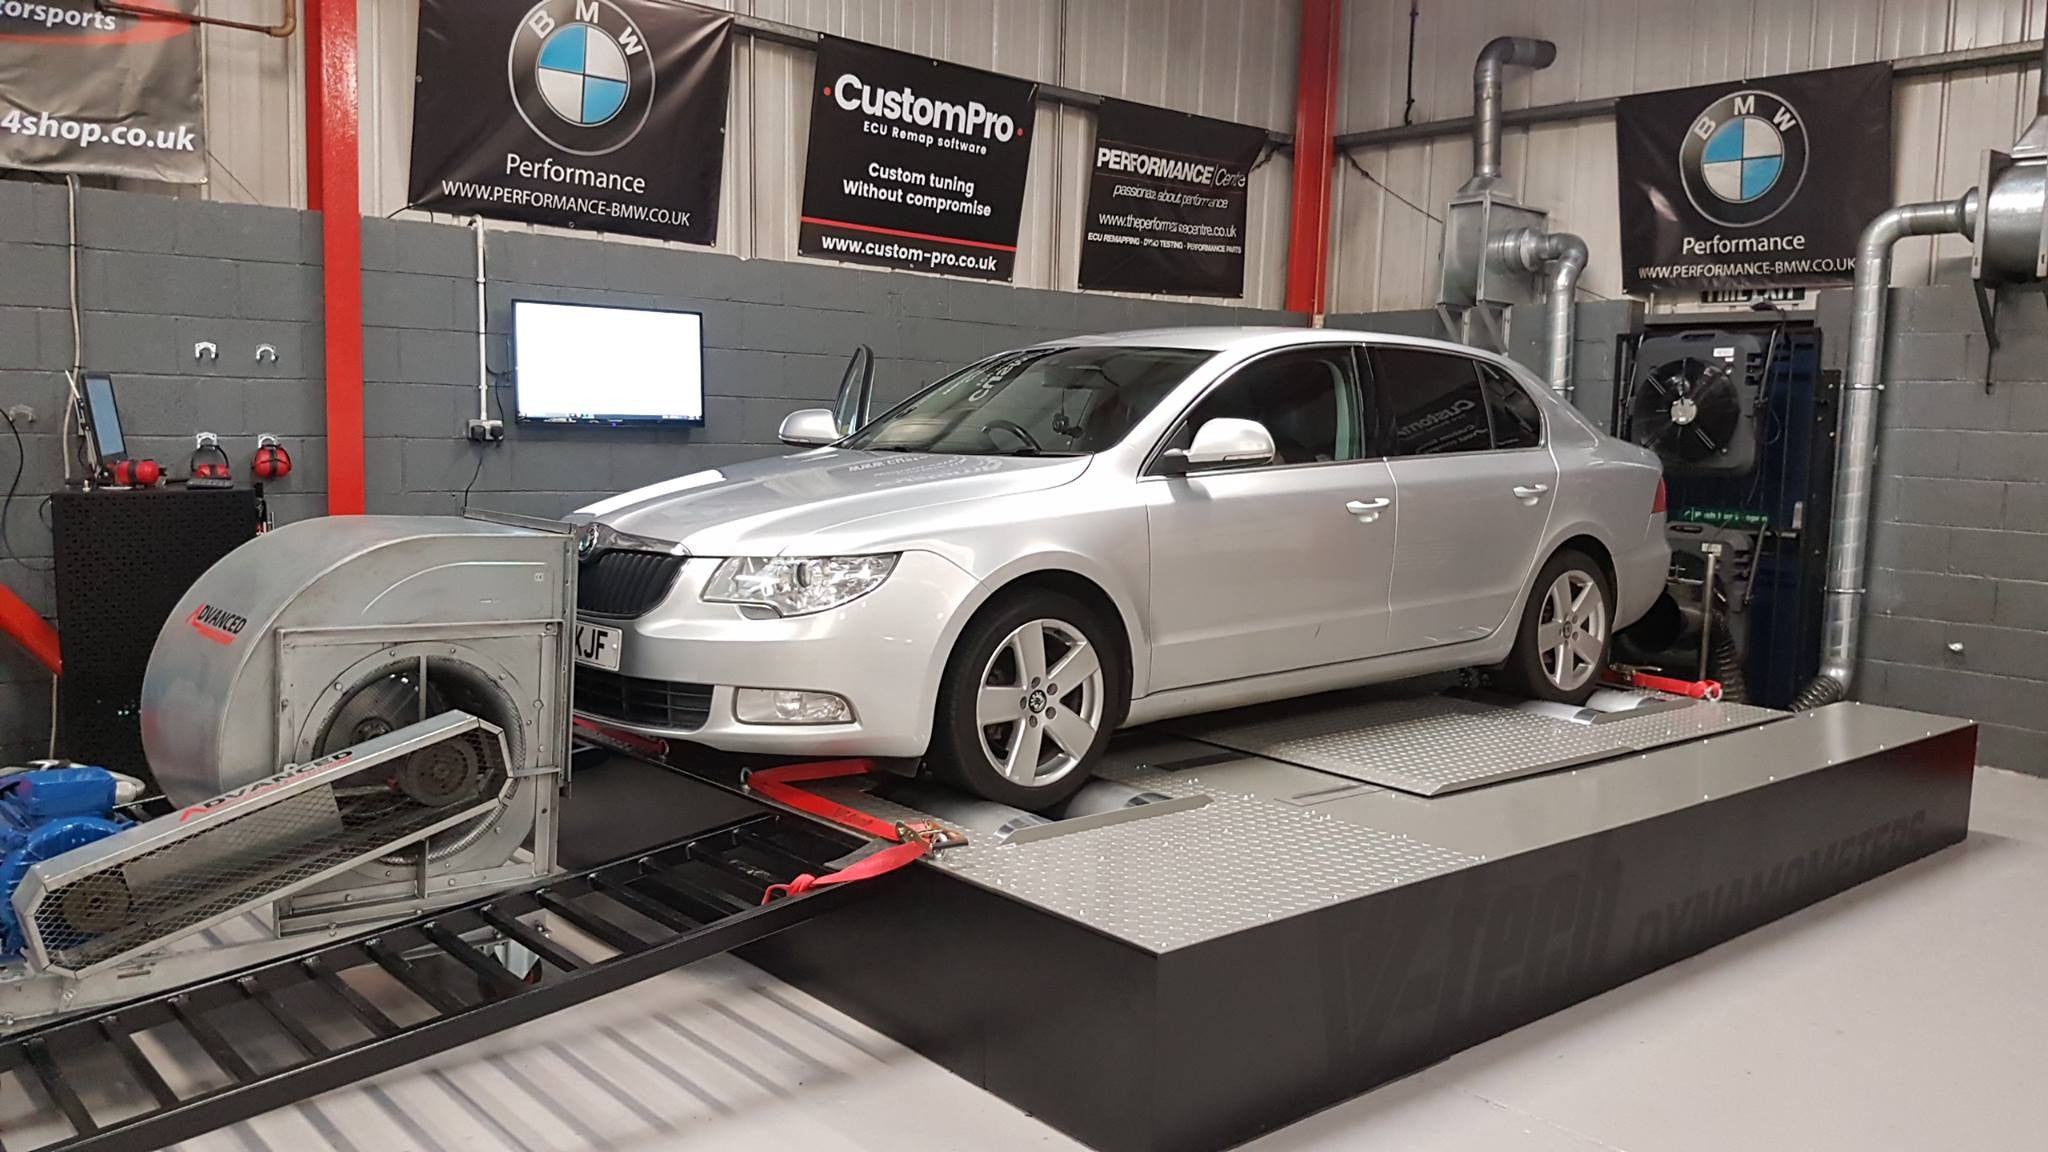 Skoda Superb 2.0 140 - Stage 1 remap